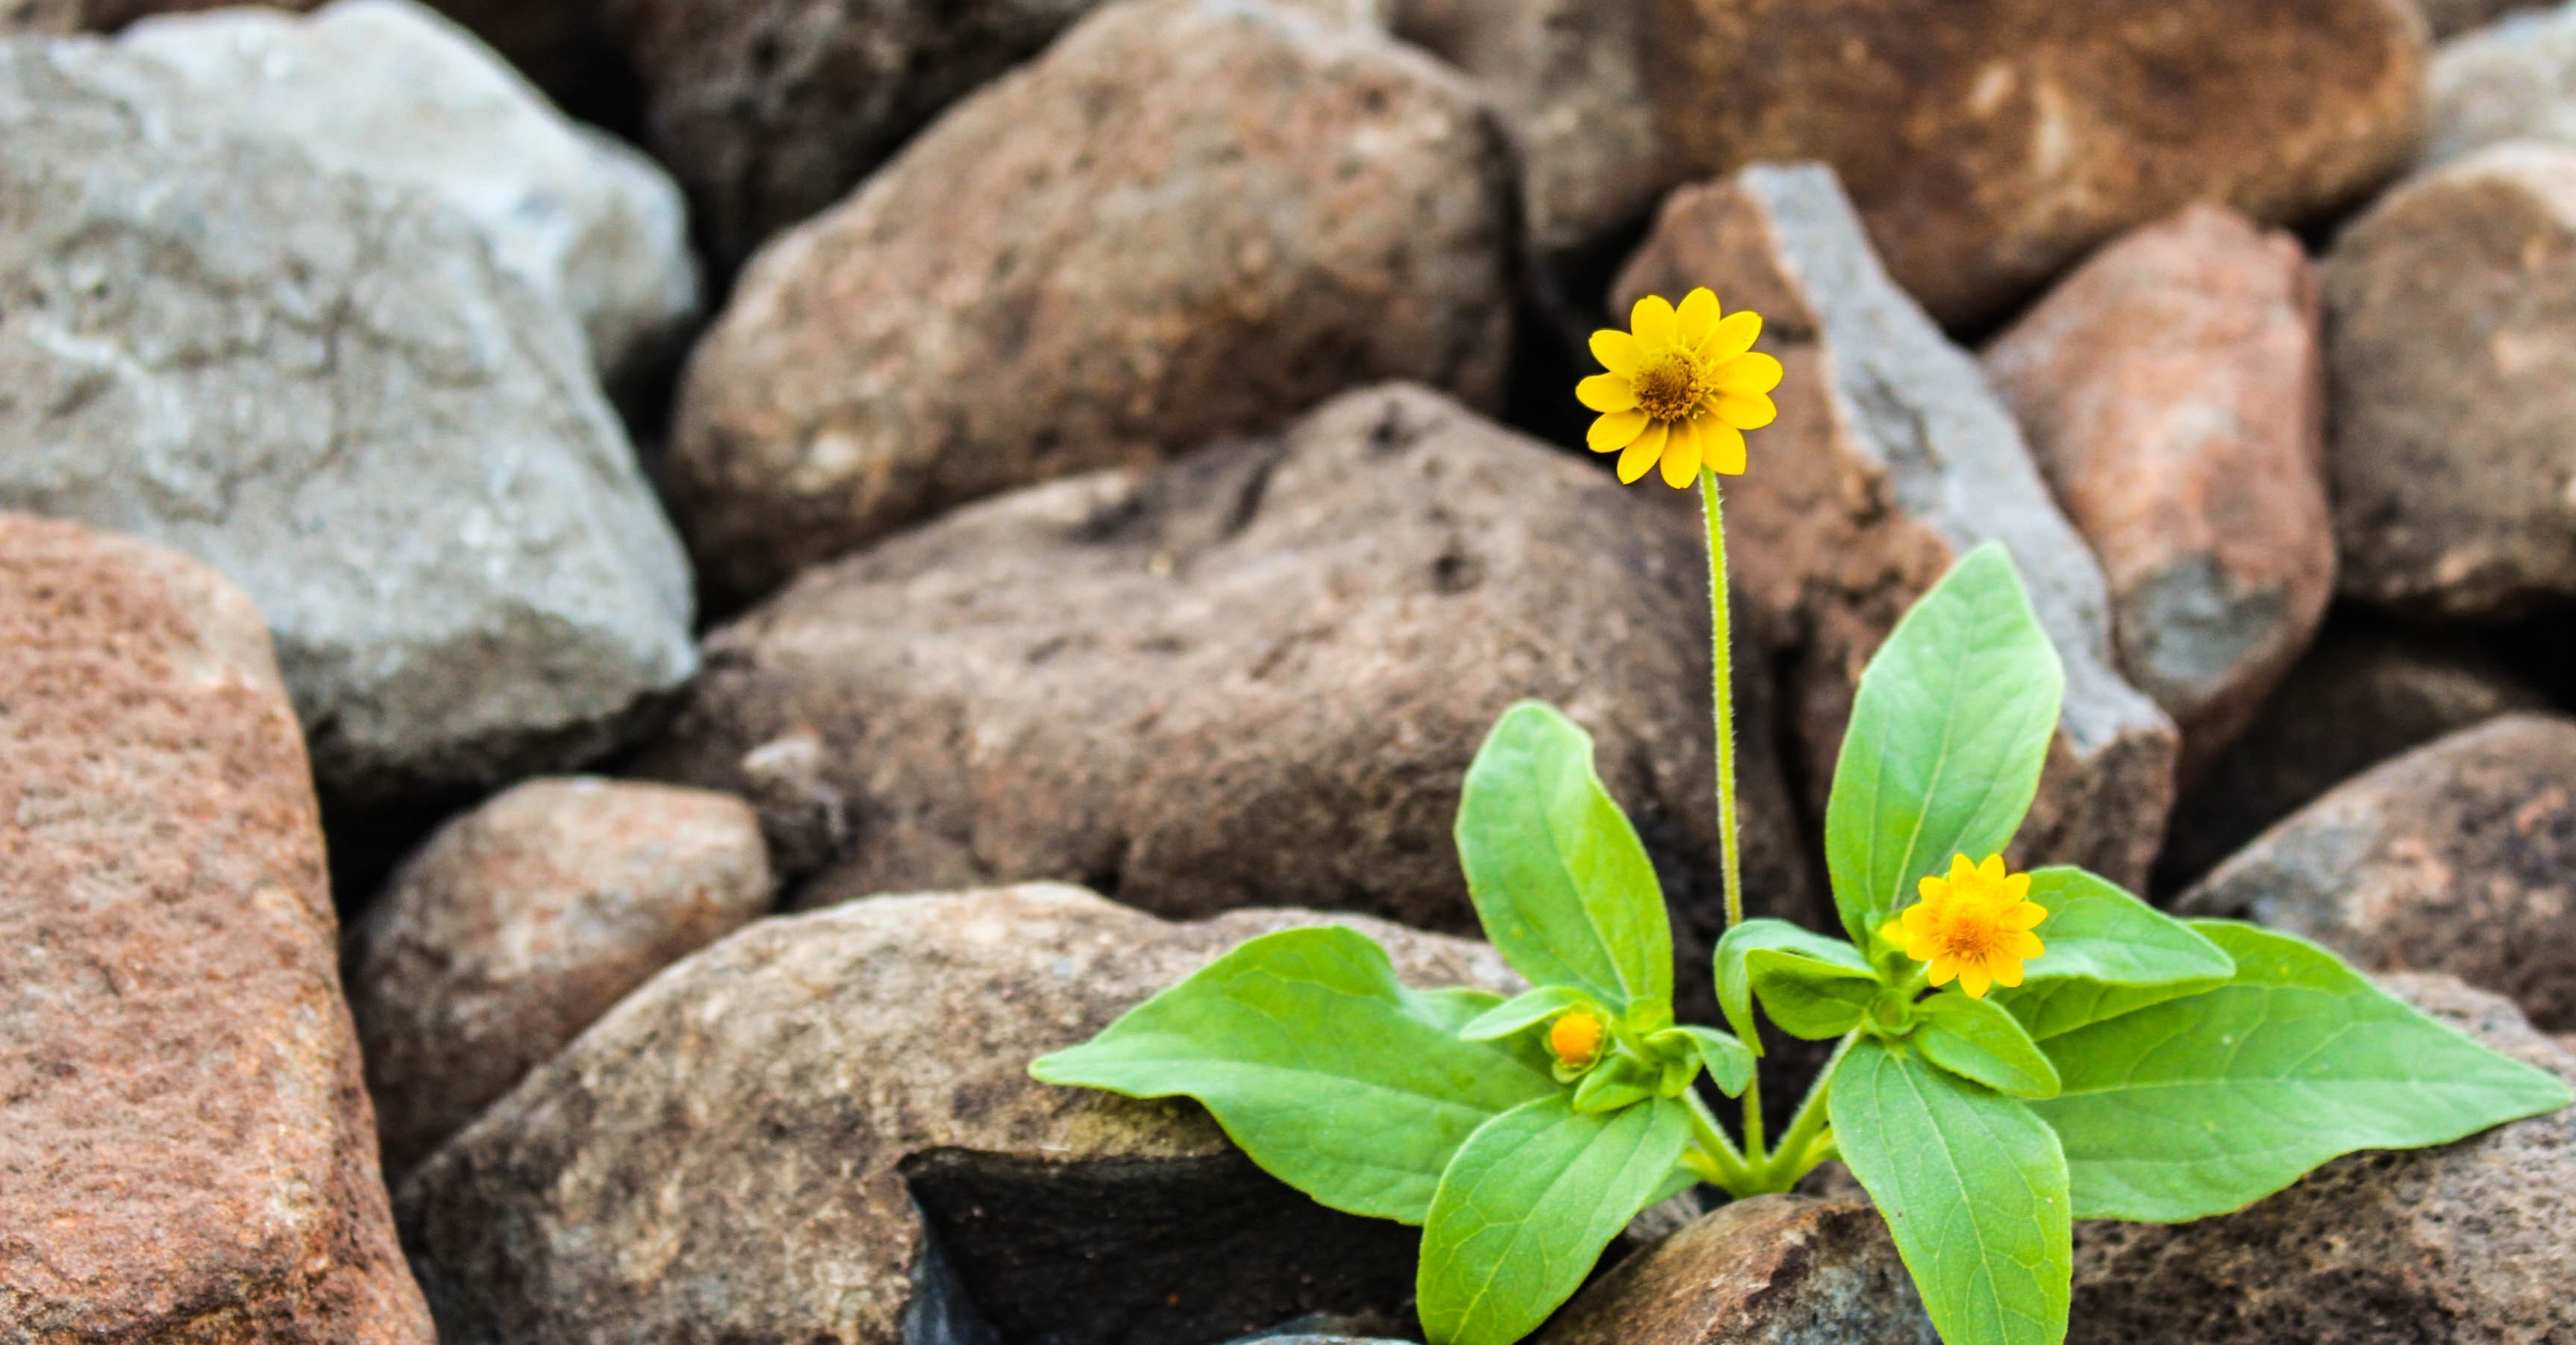 A single yellow flower with green leaves growing in a field of rocks